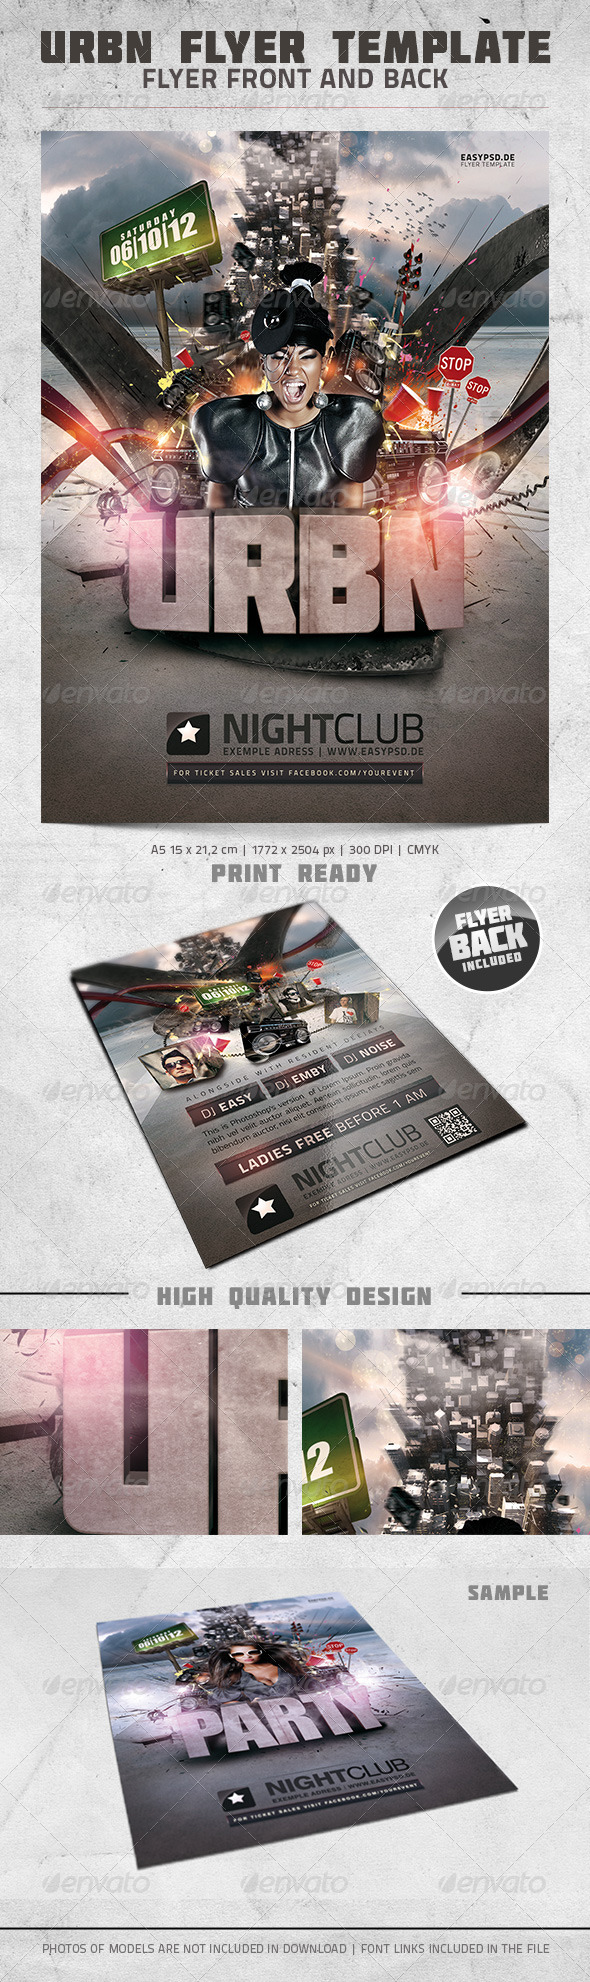 URBN Flyer Template - Clubs & Parties Events